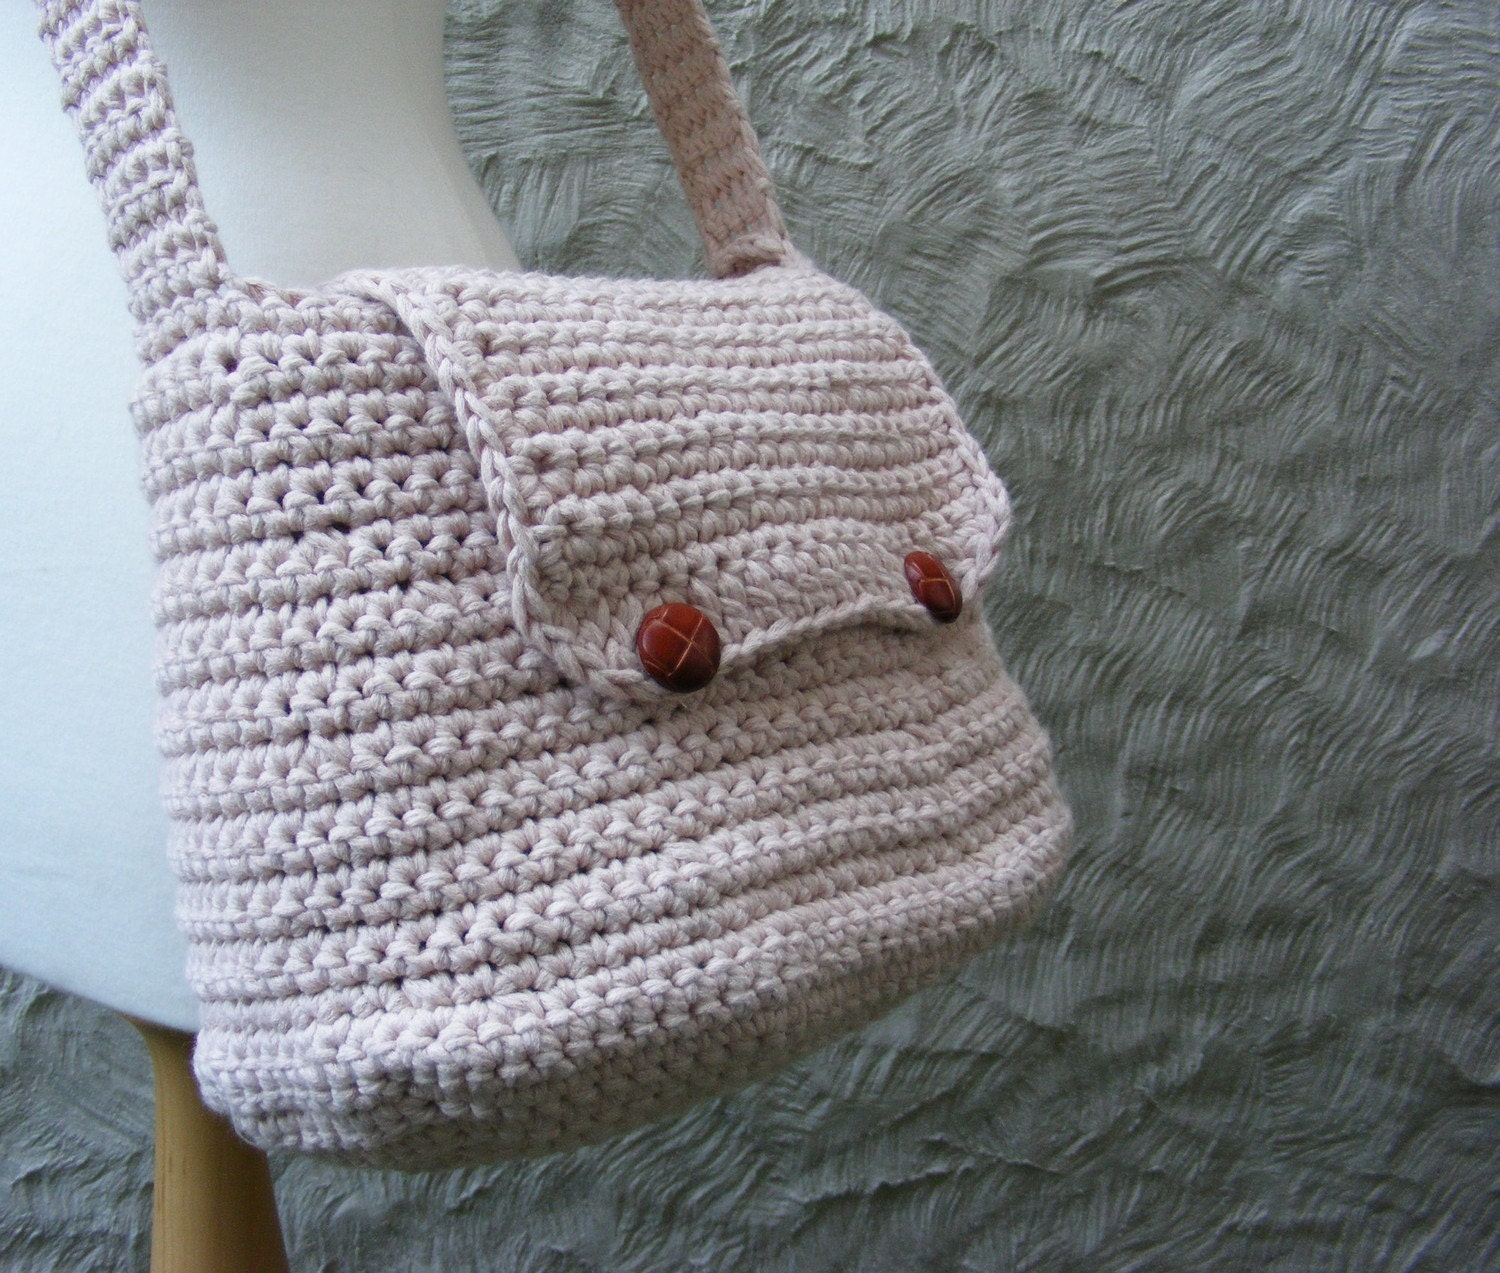 Crochet Purse Patterns Free Easy : purse patterns free crochet bag and purse patterns little eyelash bag ...